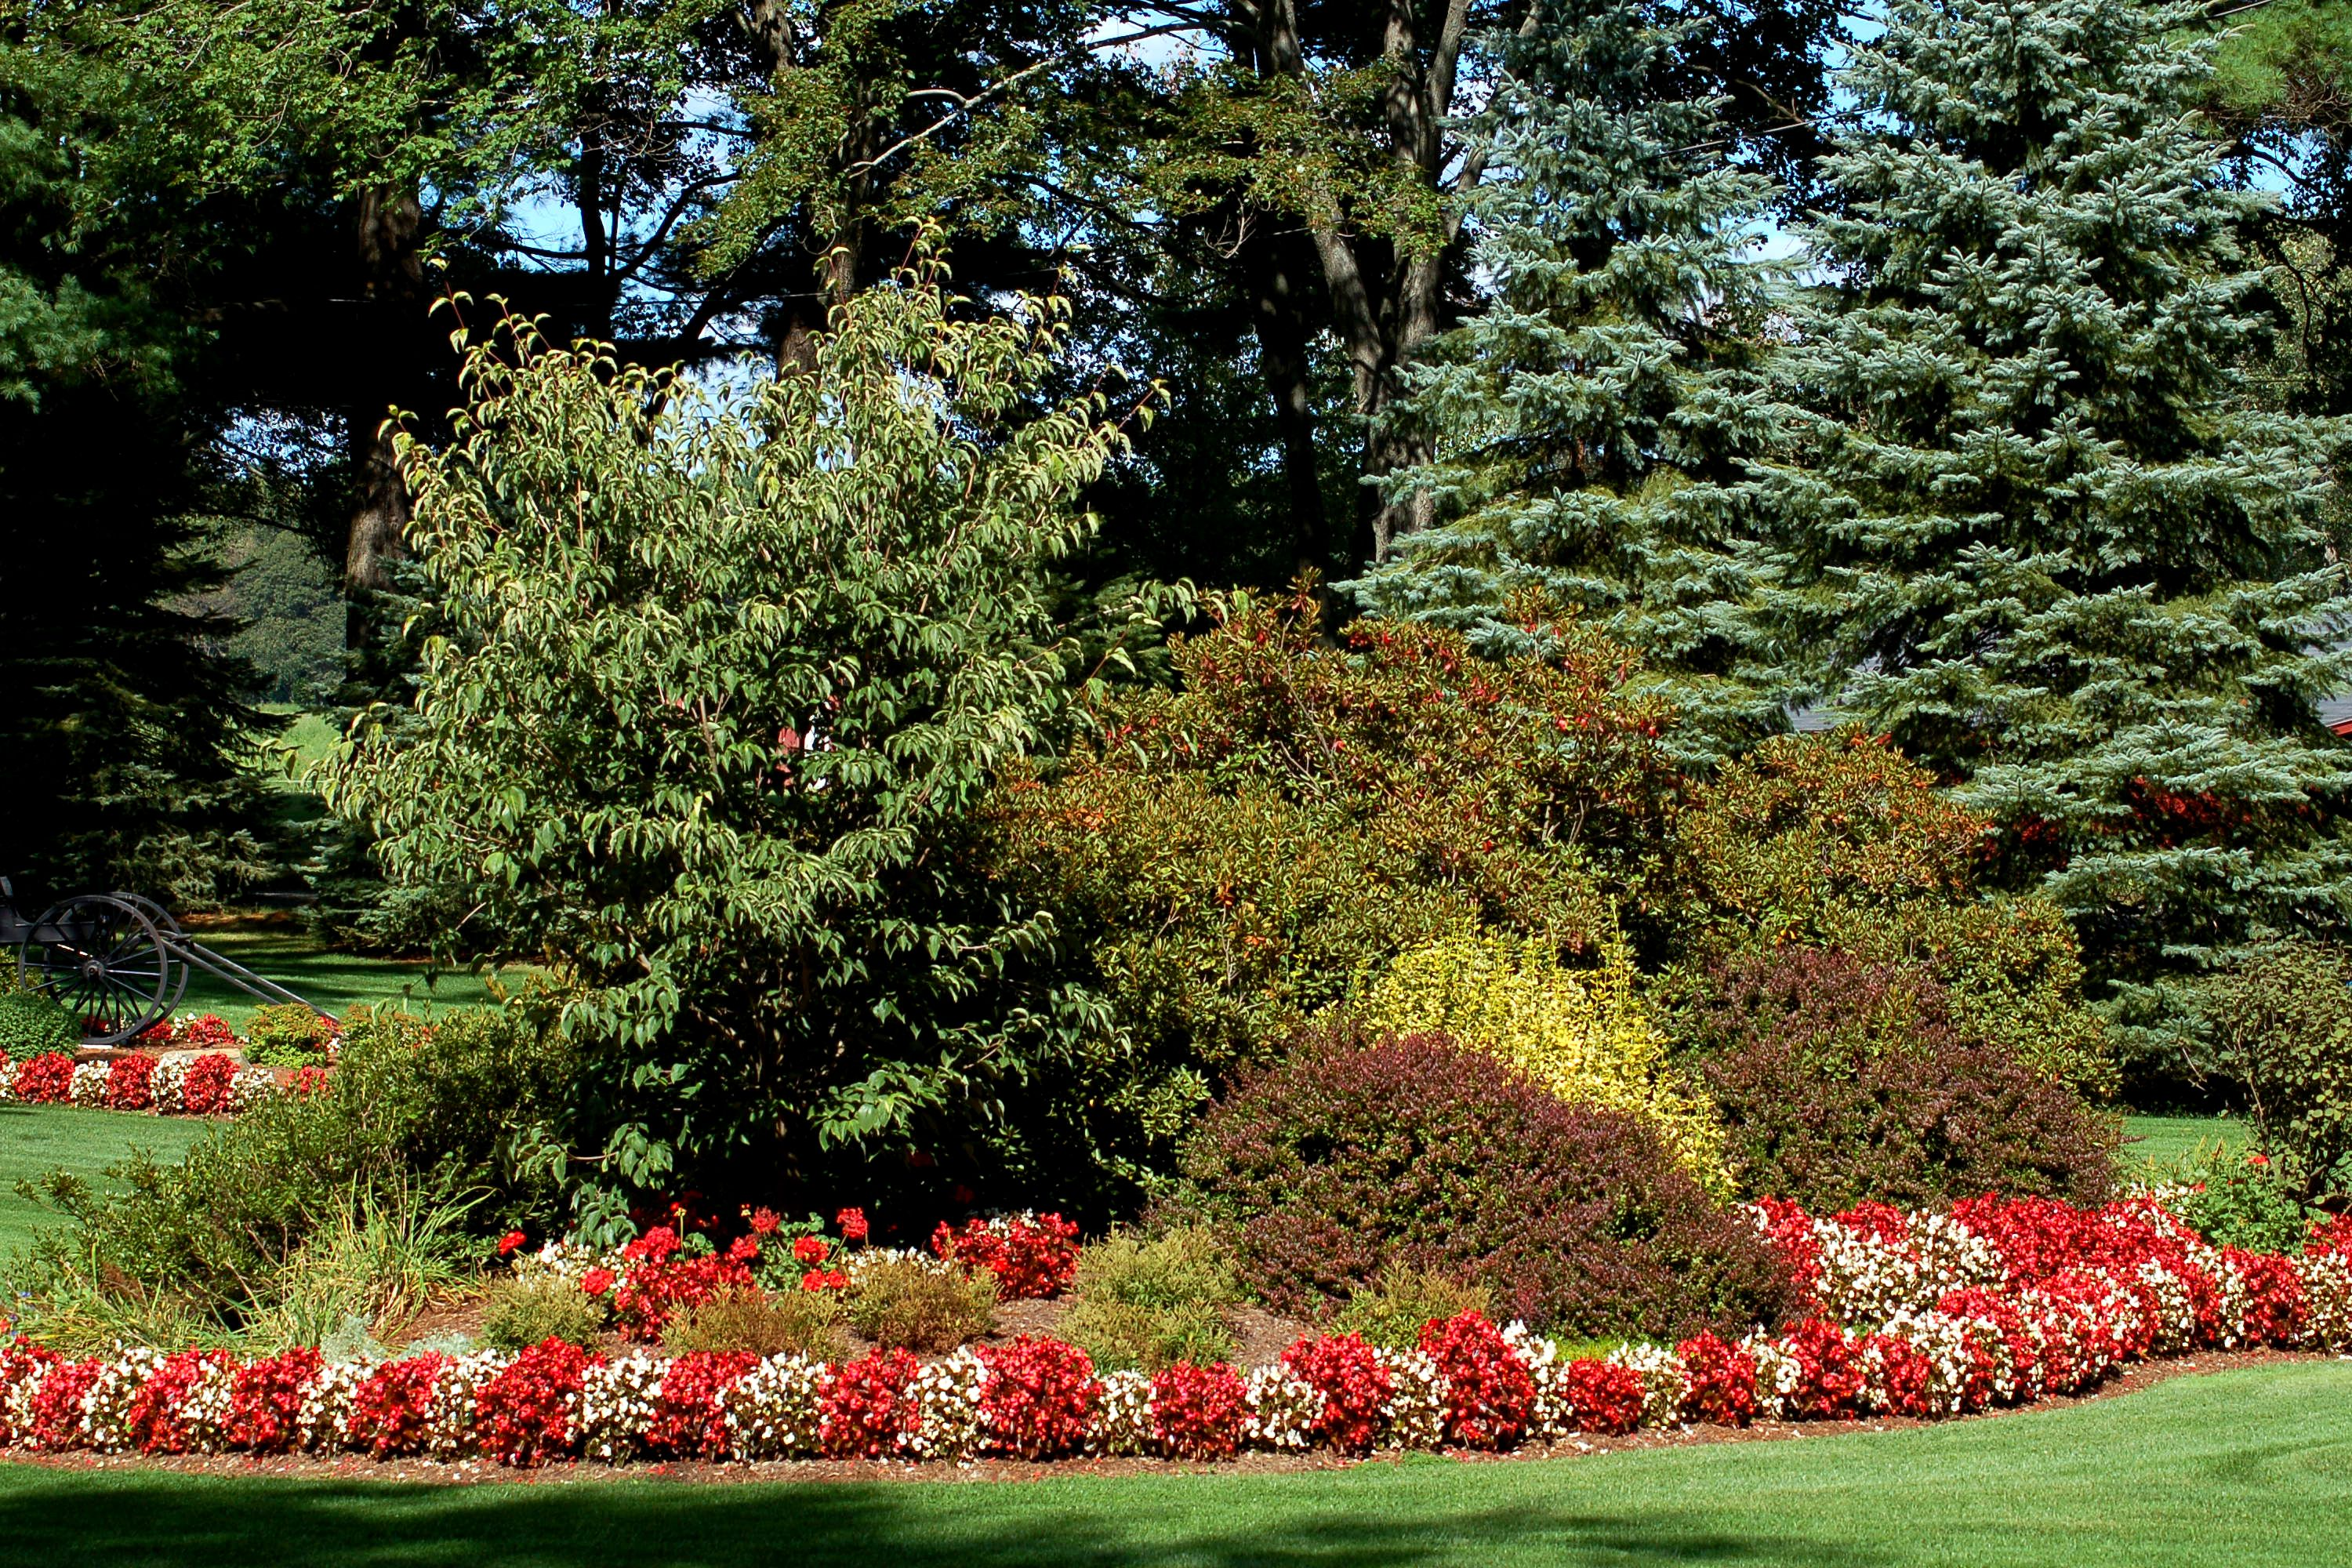 Begonias used to edge a border. The flowers are red and white.